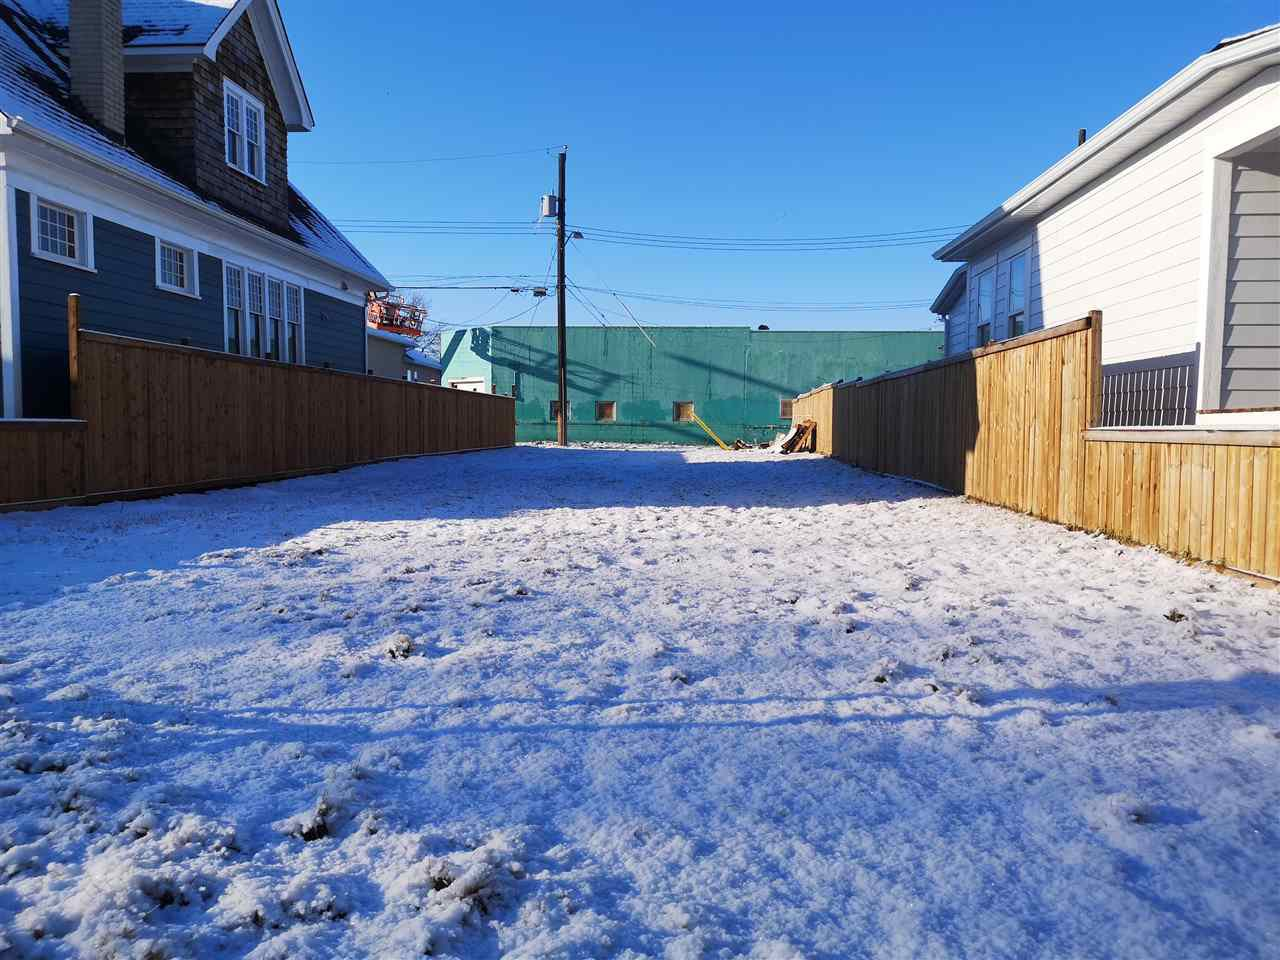 Main Photo: 11742 96 Street in Edmonton: Zone 05 Land Commercial for sale : MLS®# E4189845